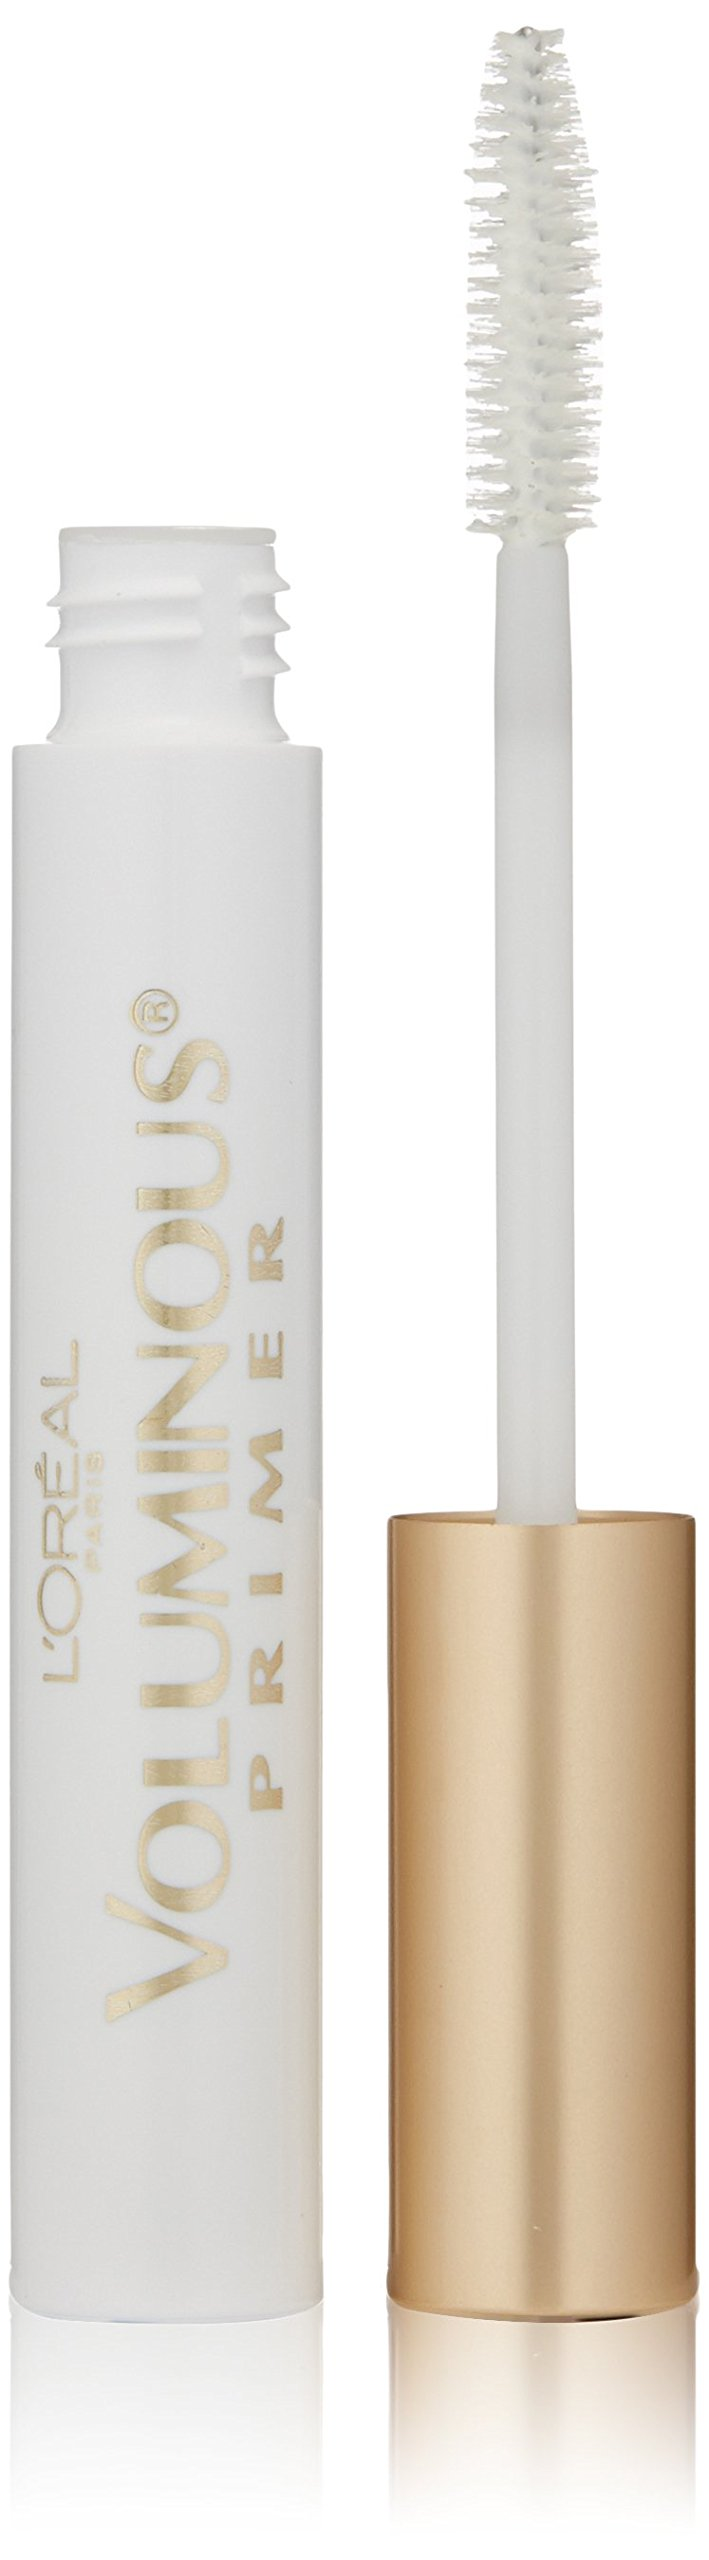 L'Oréal Paris Voluminous Primer Mascara, Primer, 0.24 fl. oz.